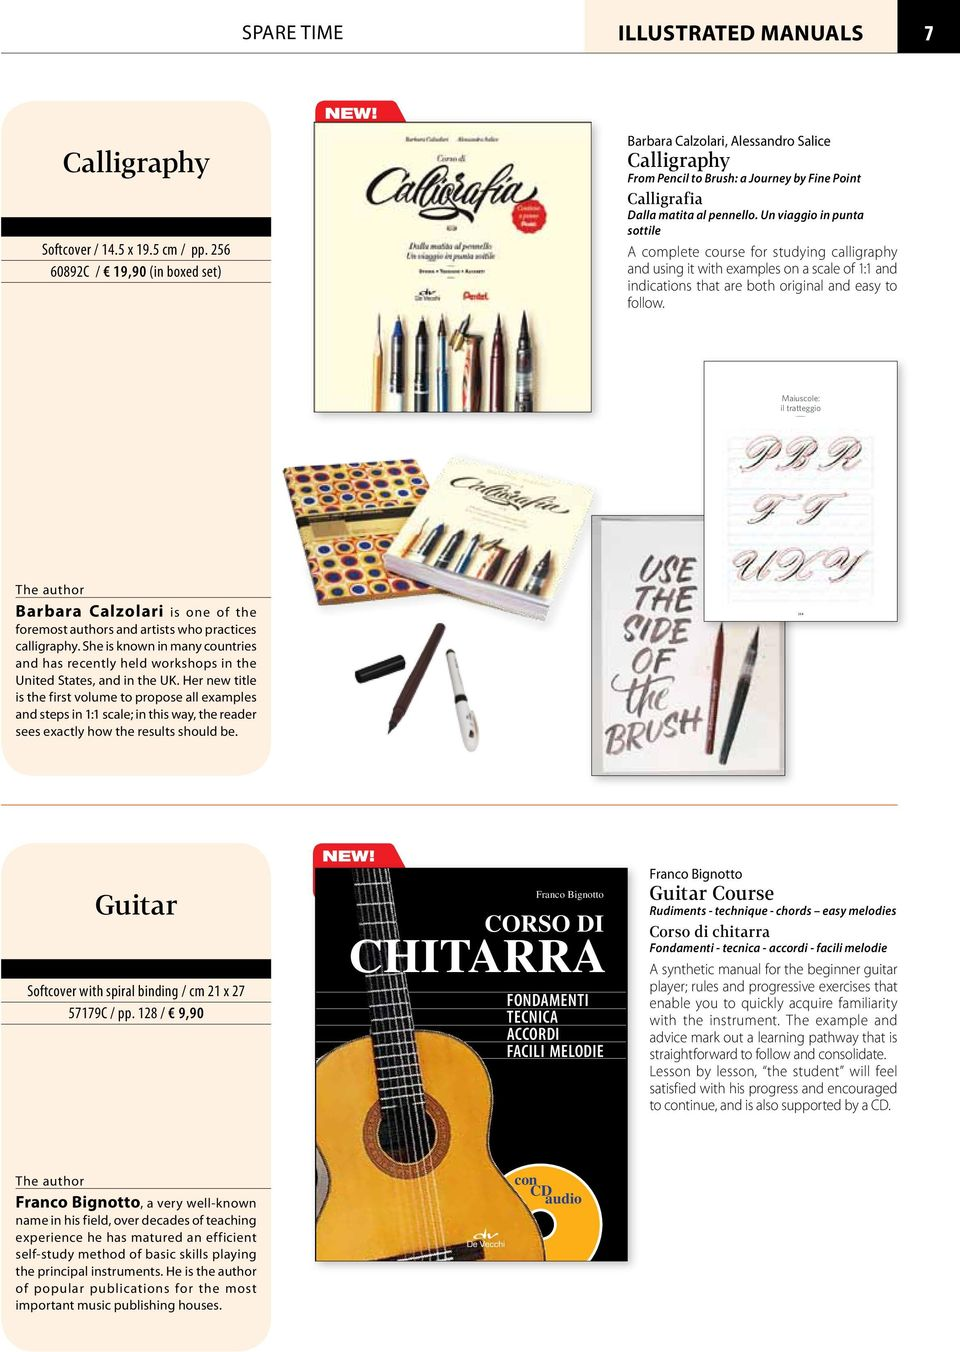 Un viaggio in punta sottile A complete course for studying calligraphy and using it with examples on a scale of 1:1 and indications that are both original and easy to follow.